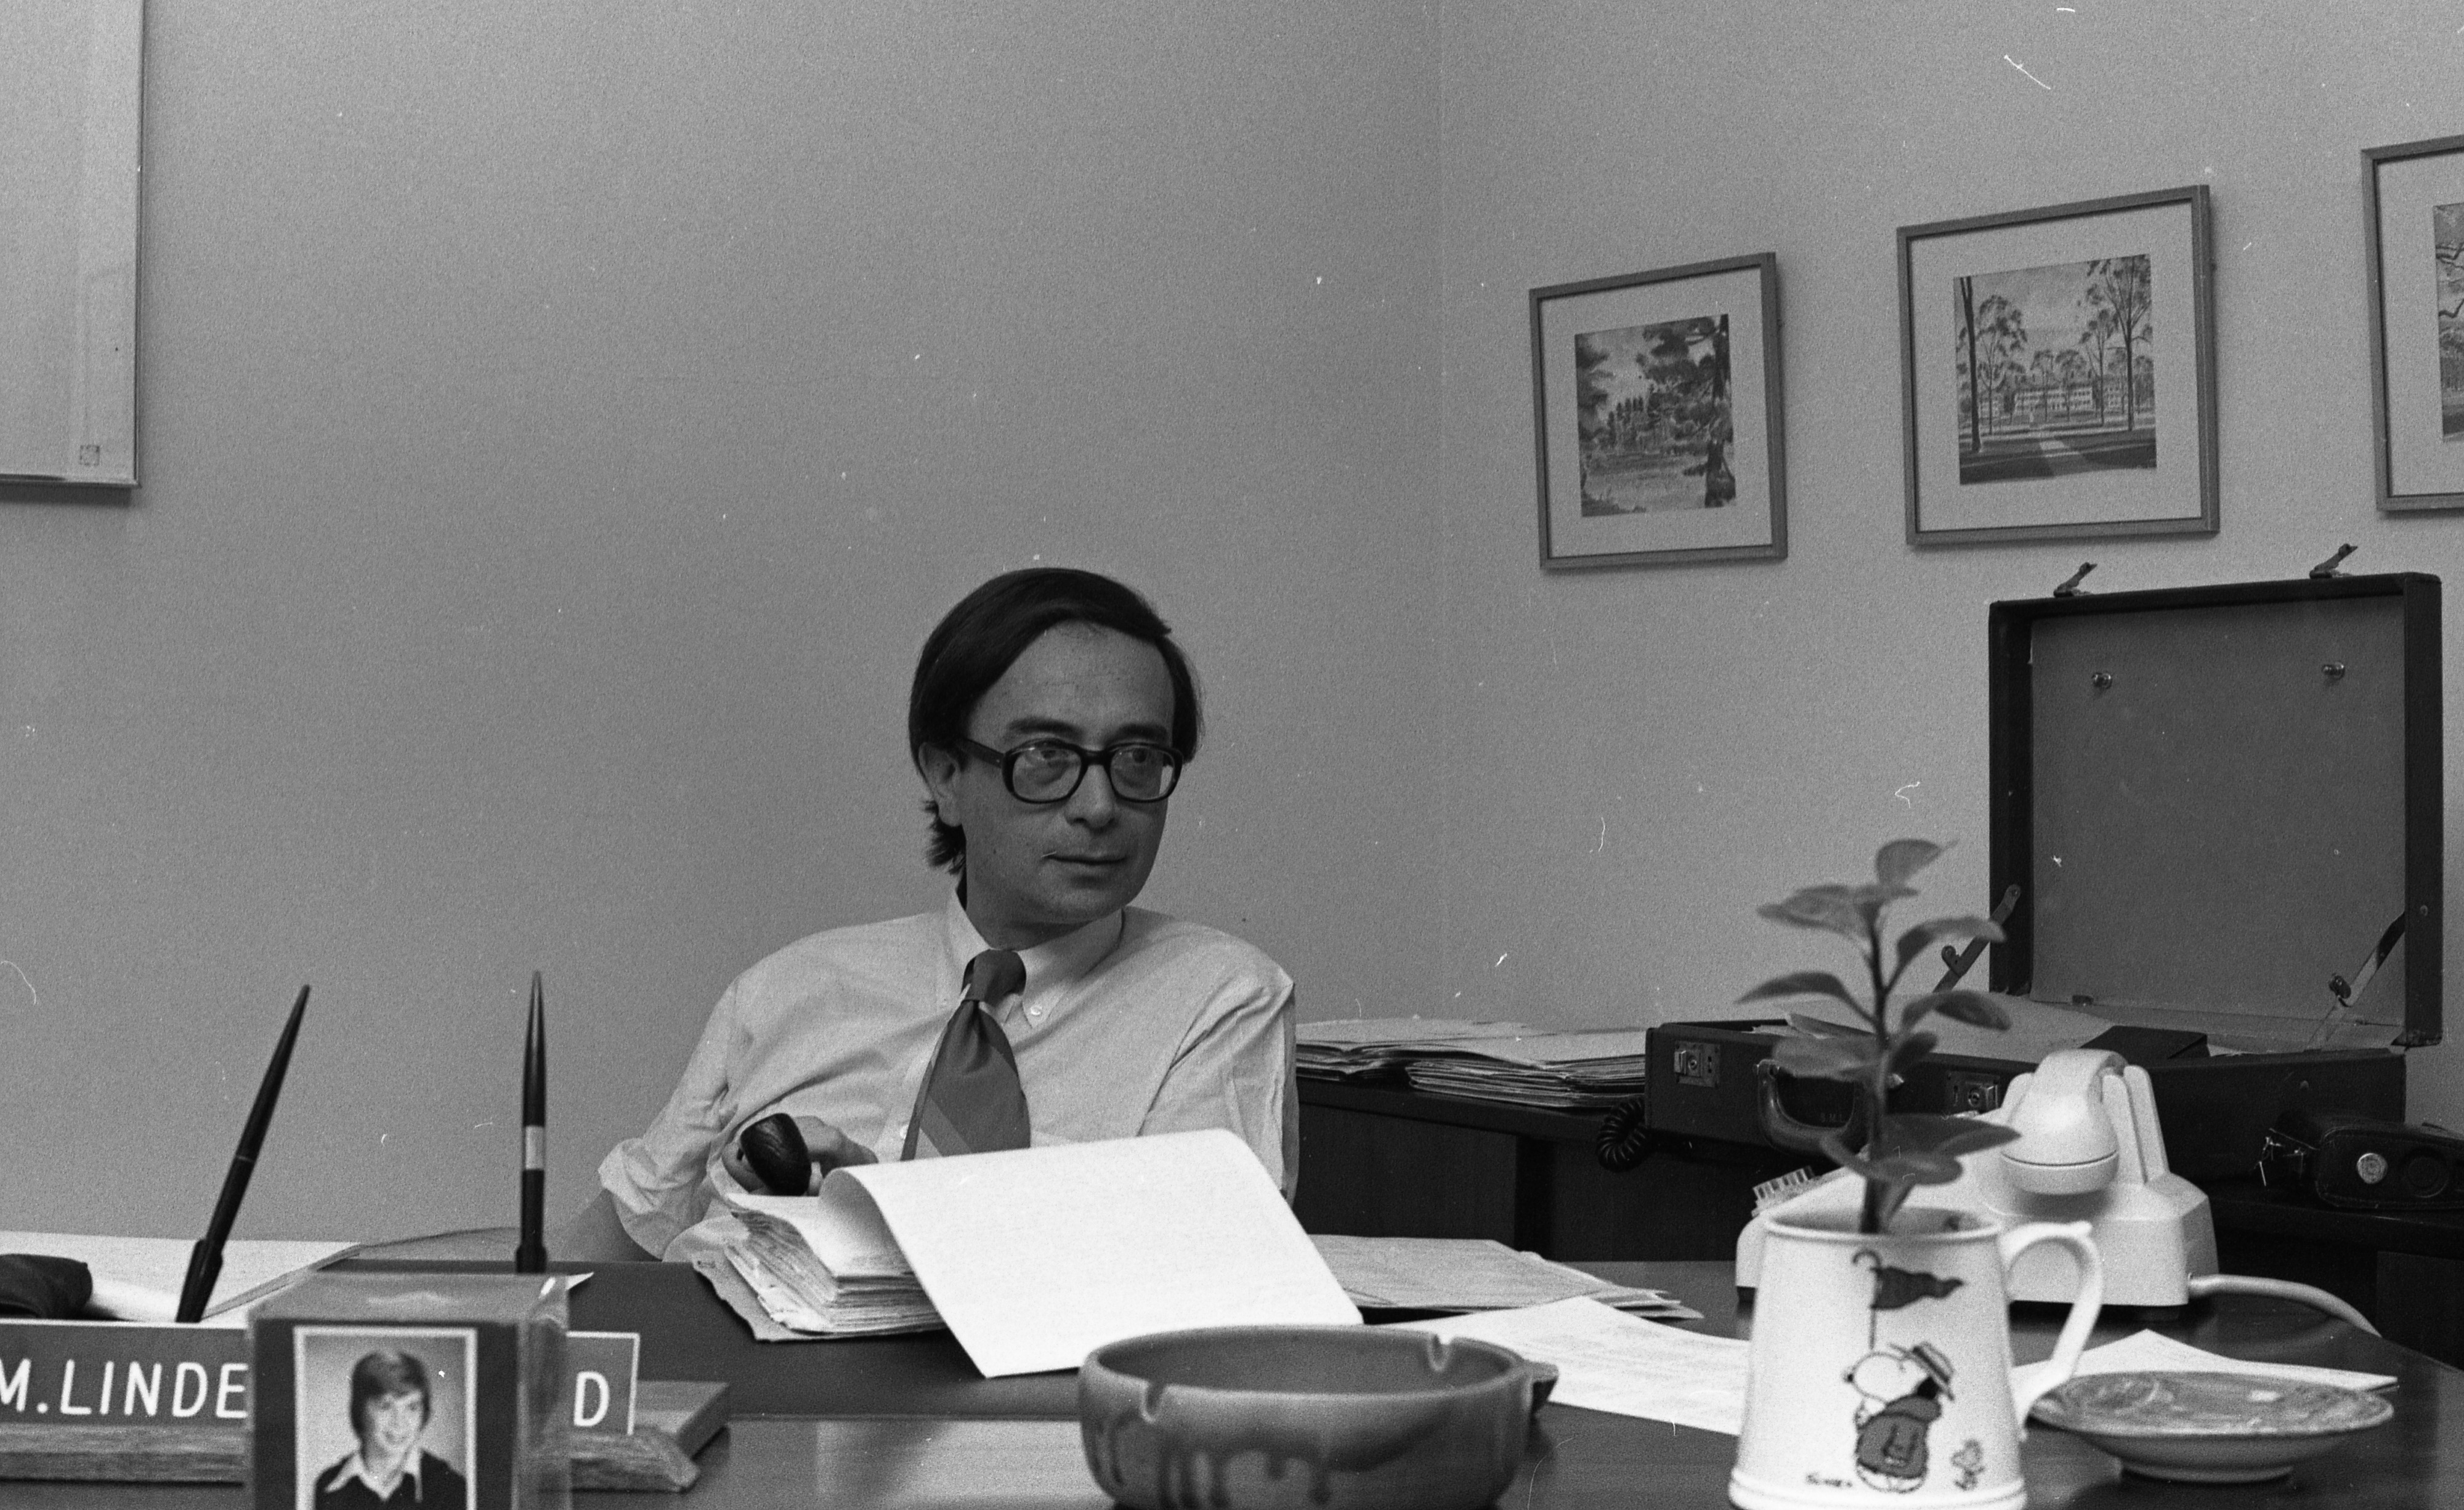 Dr. S. Martin Lindenauer, Chief Of Staff At Ann Arbor's VA Hospital Reacting To Investigation Of VA Nurses, June 1976 image